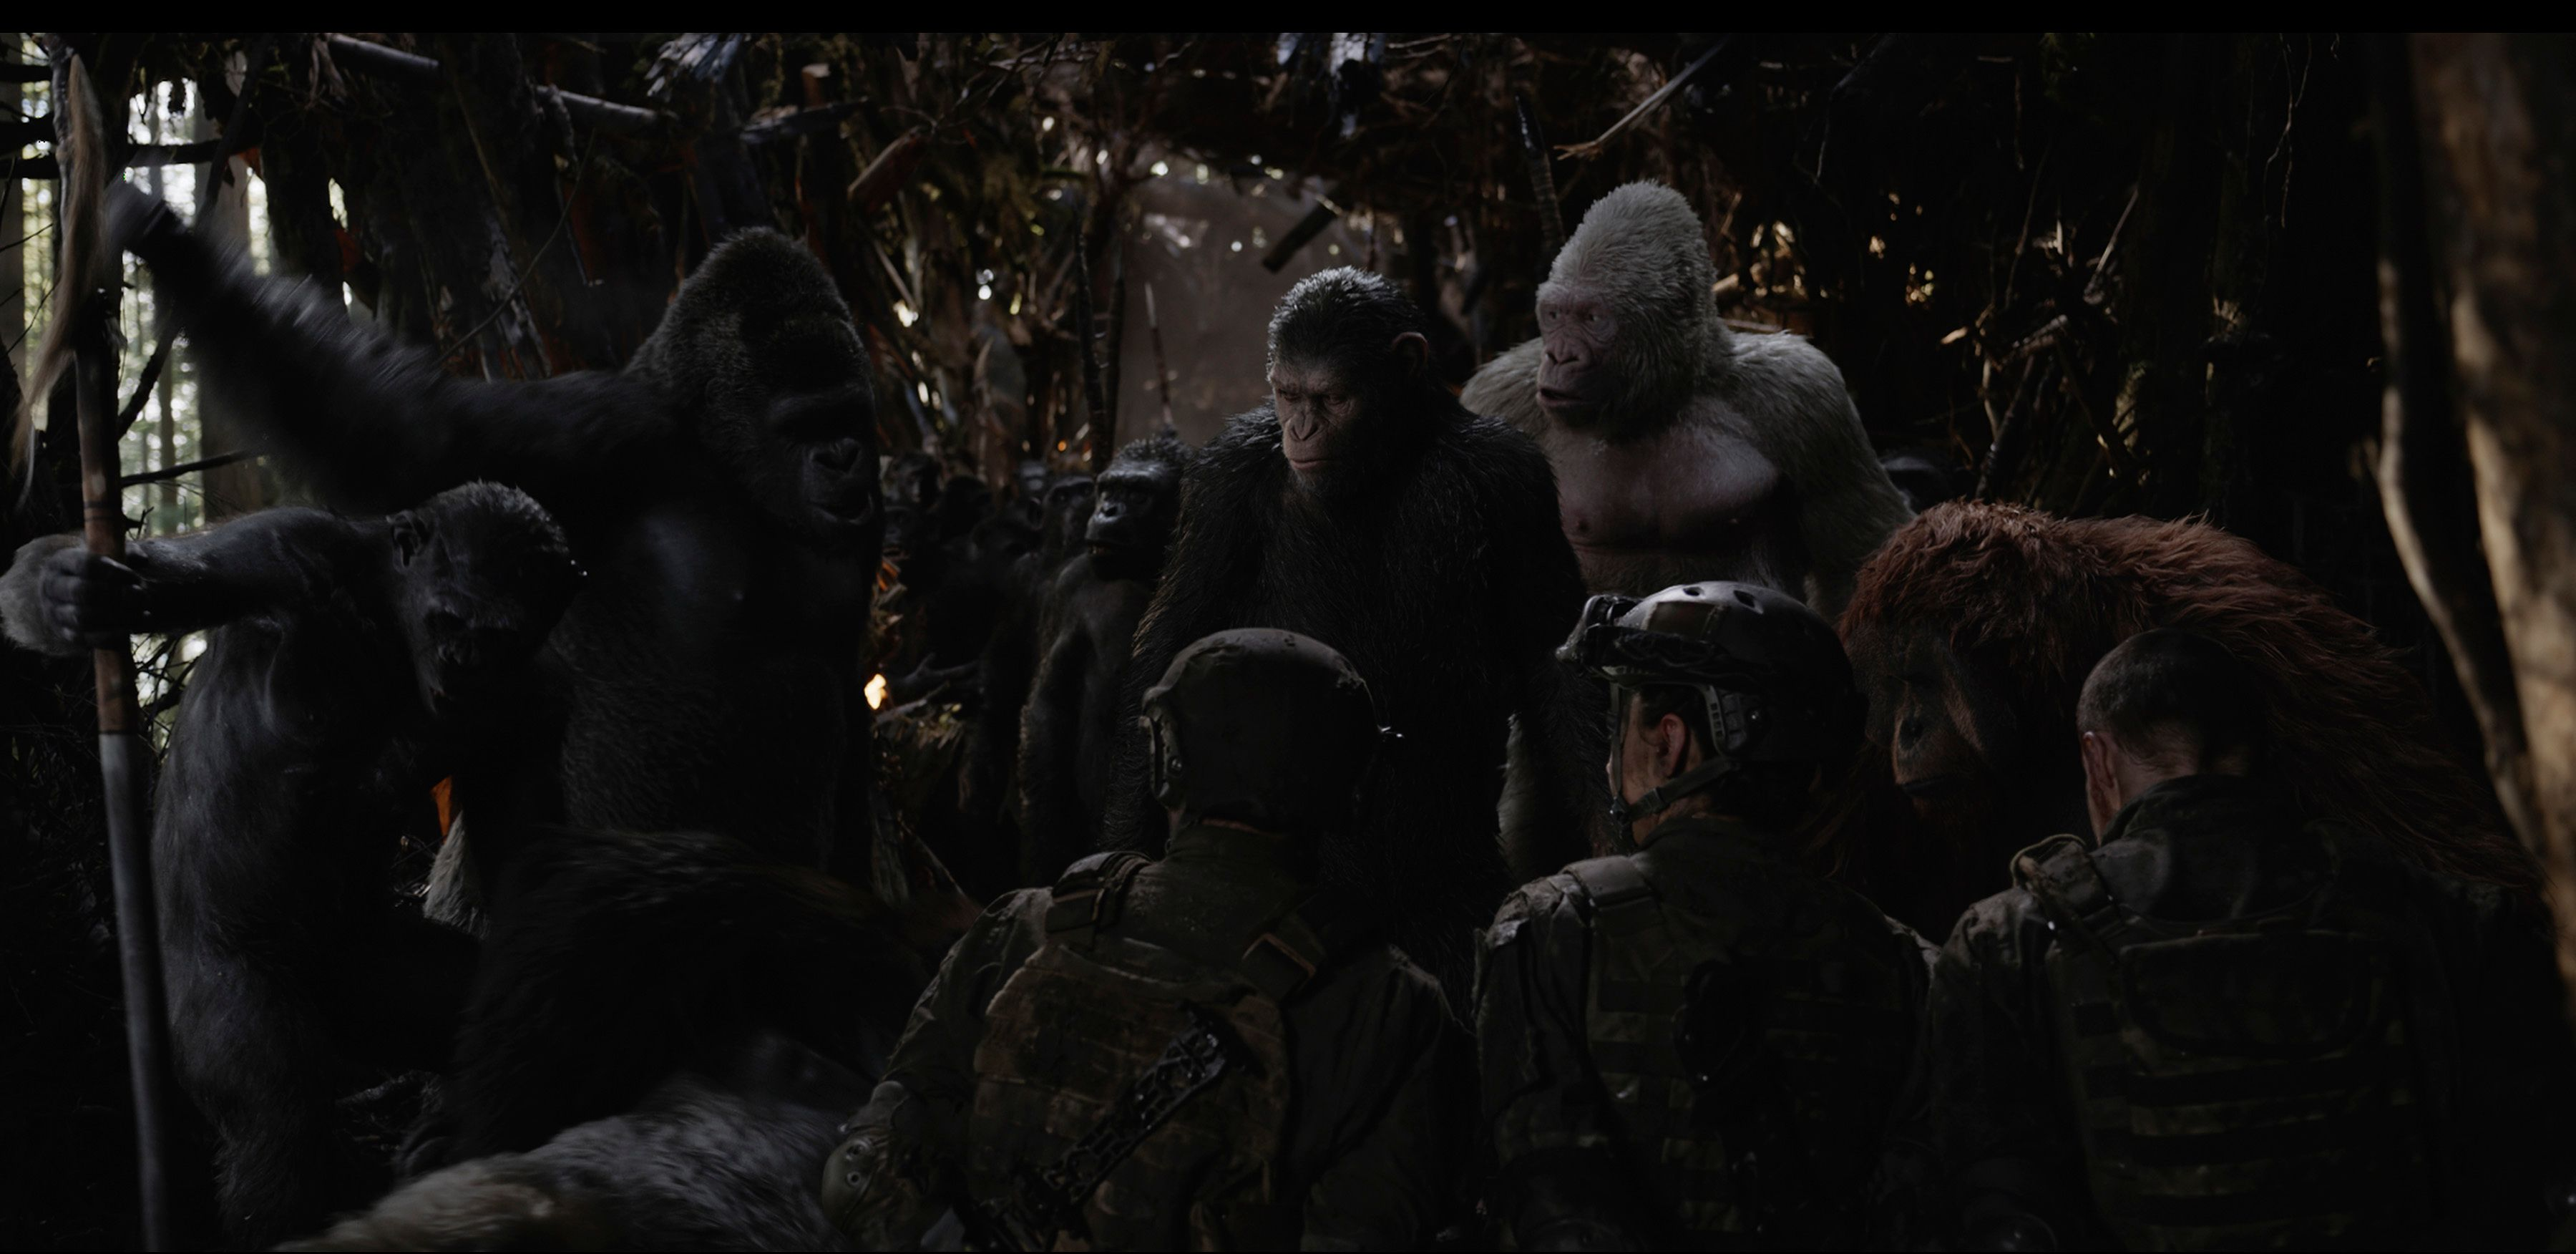 war for the planet of the apes full movies download in hindi